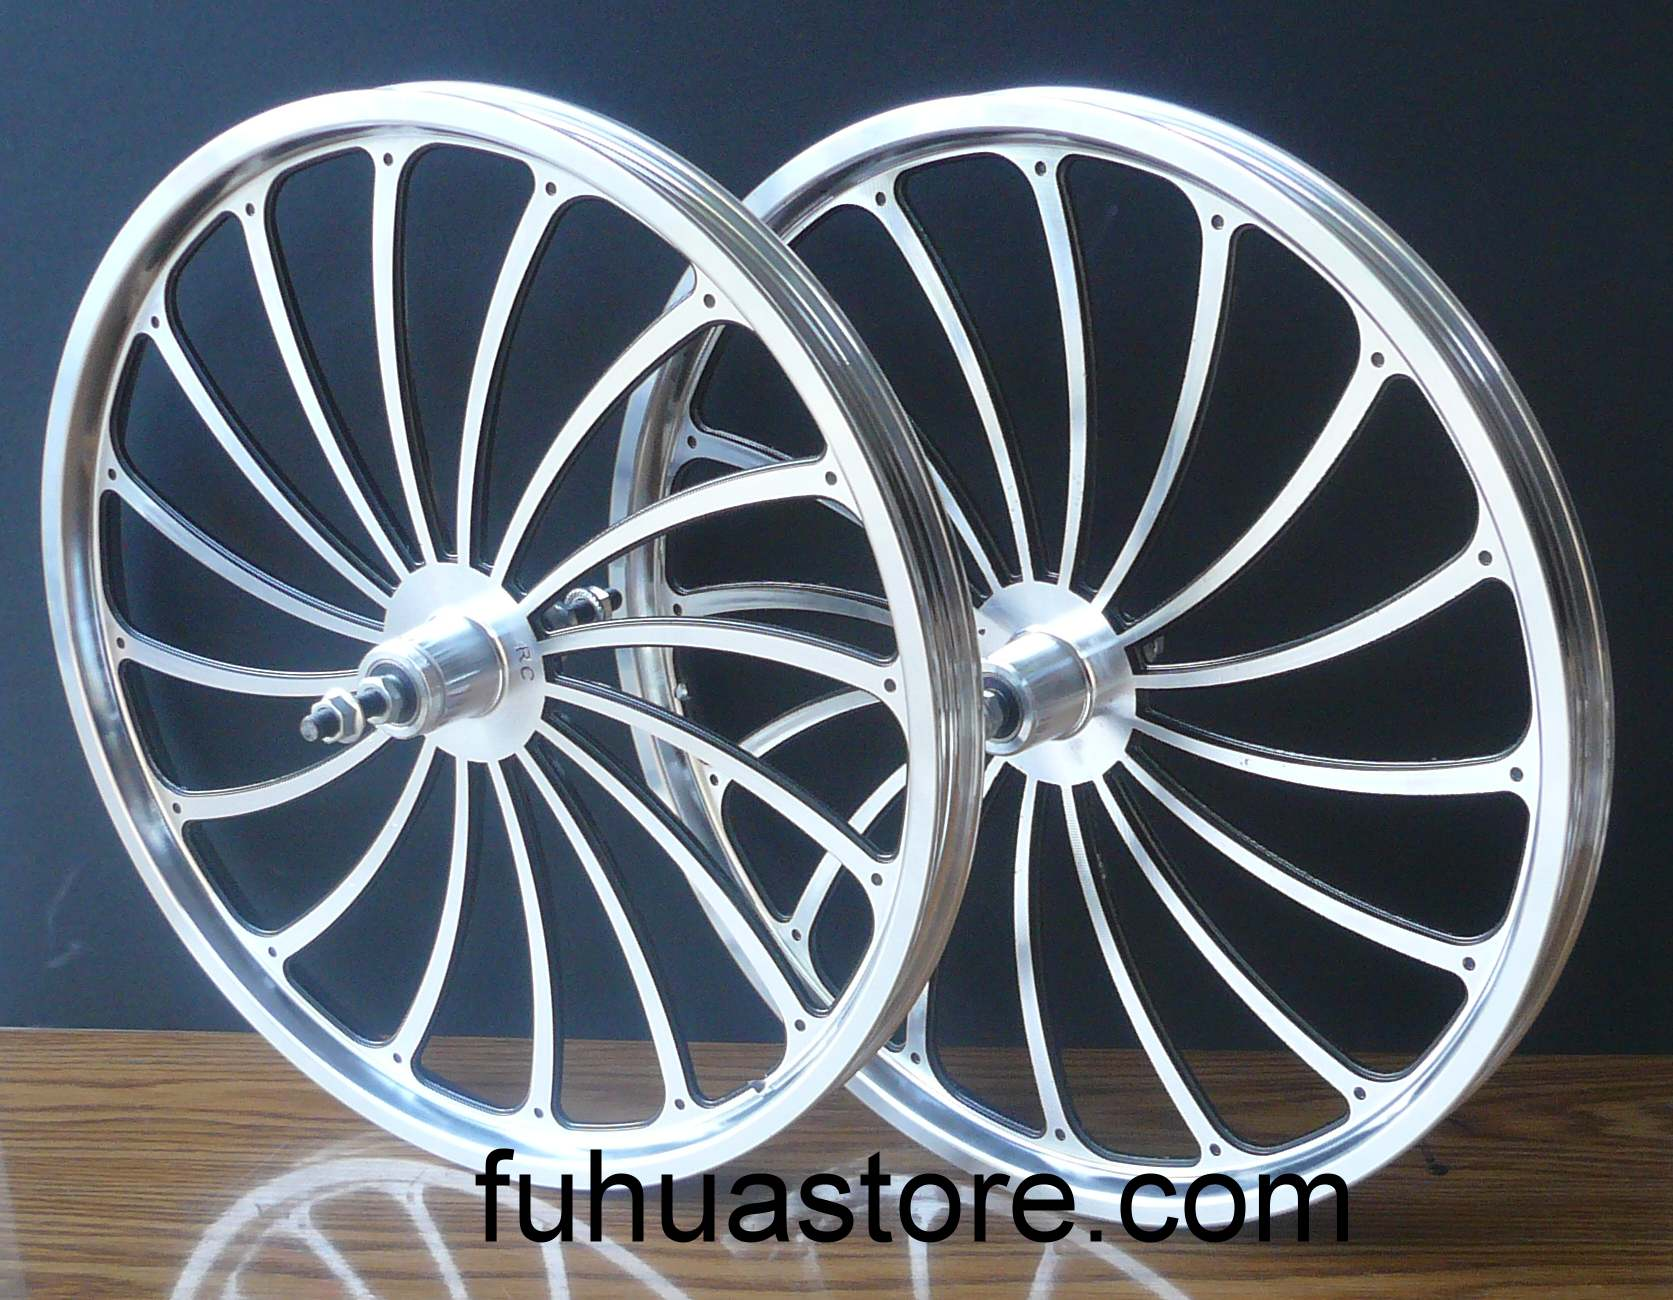 Bmx bike bicycle 20 rear front wheels rims set for Bicycle rims